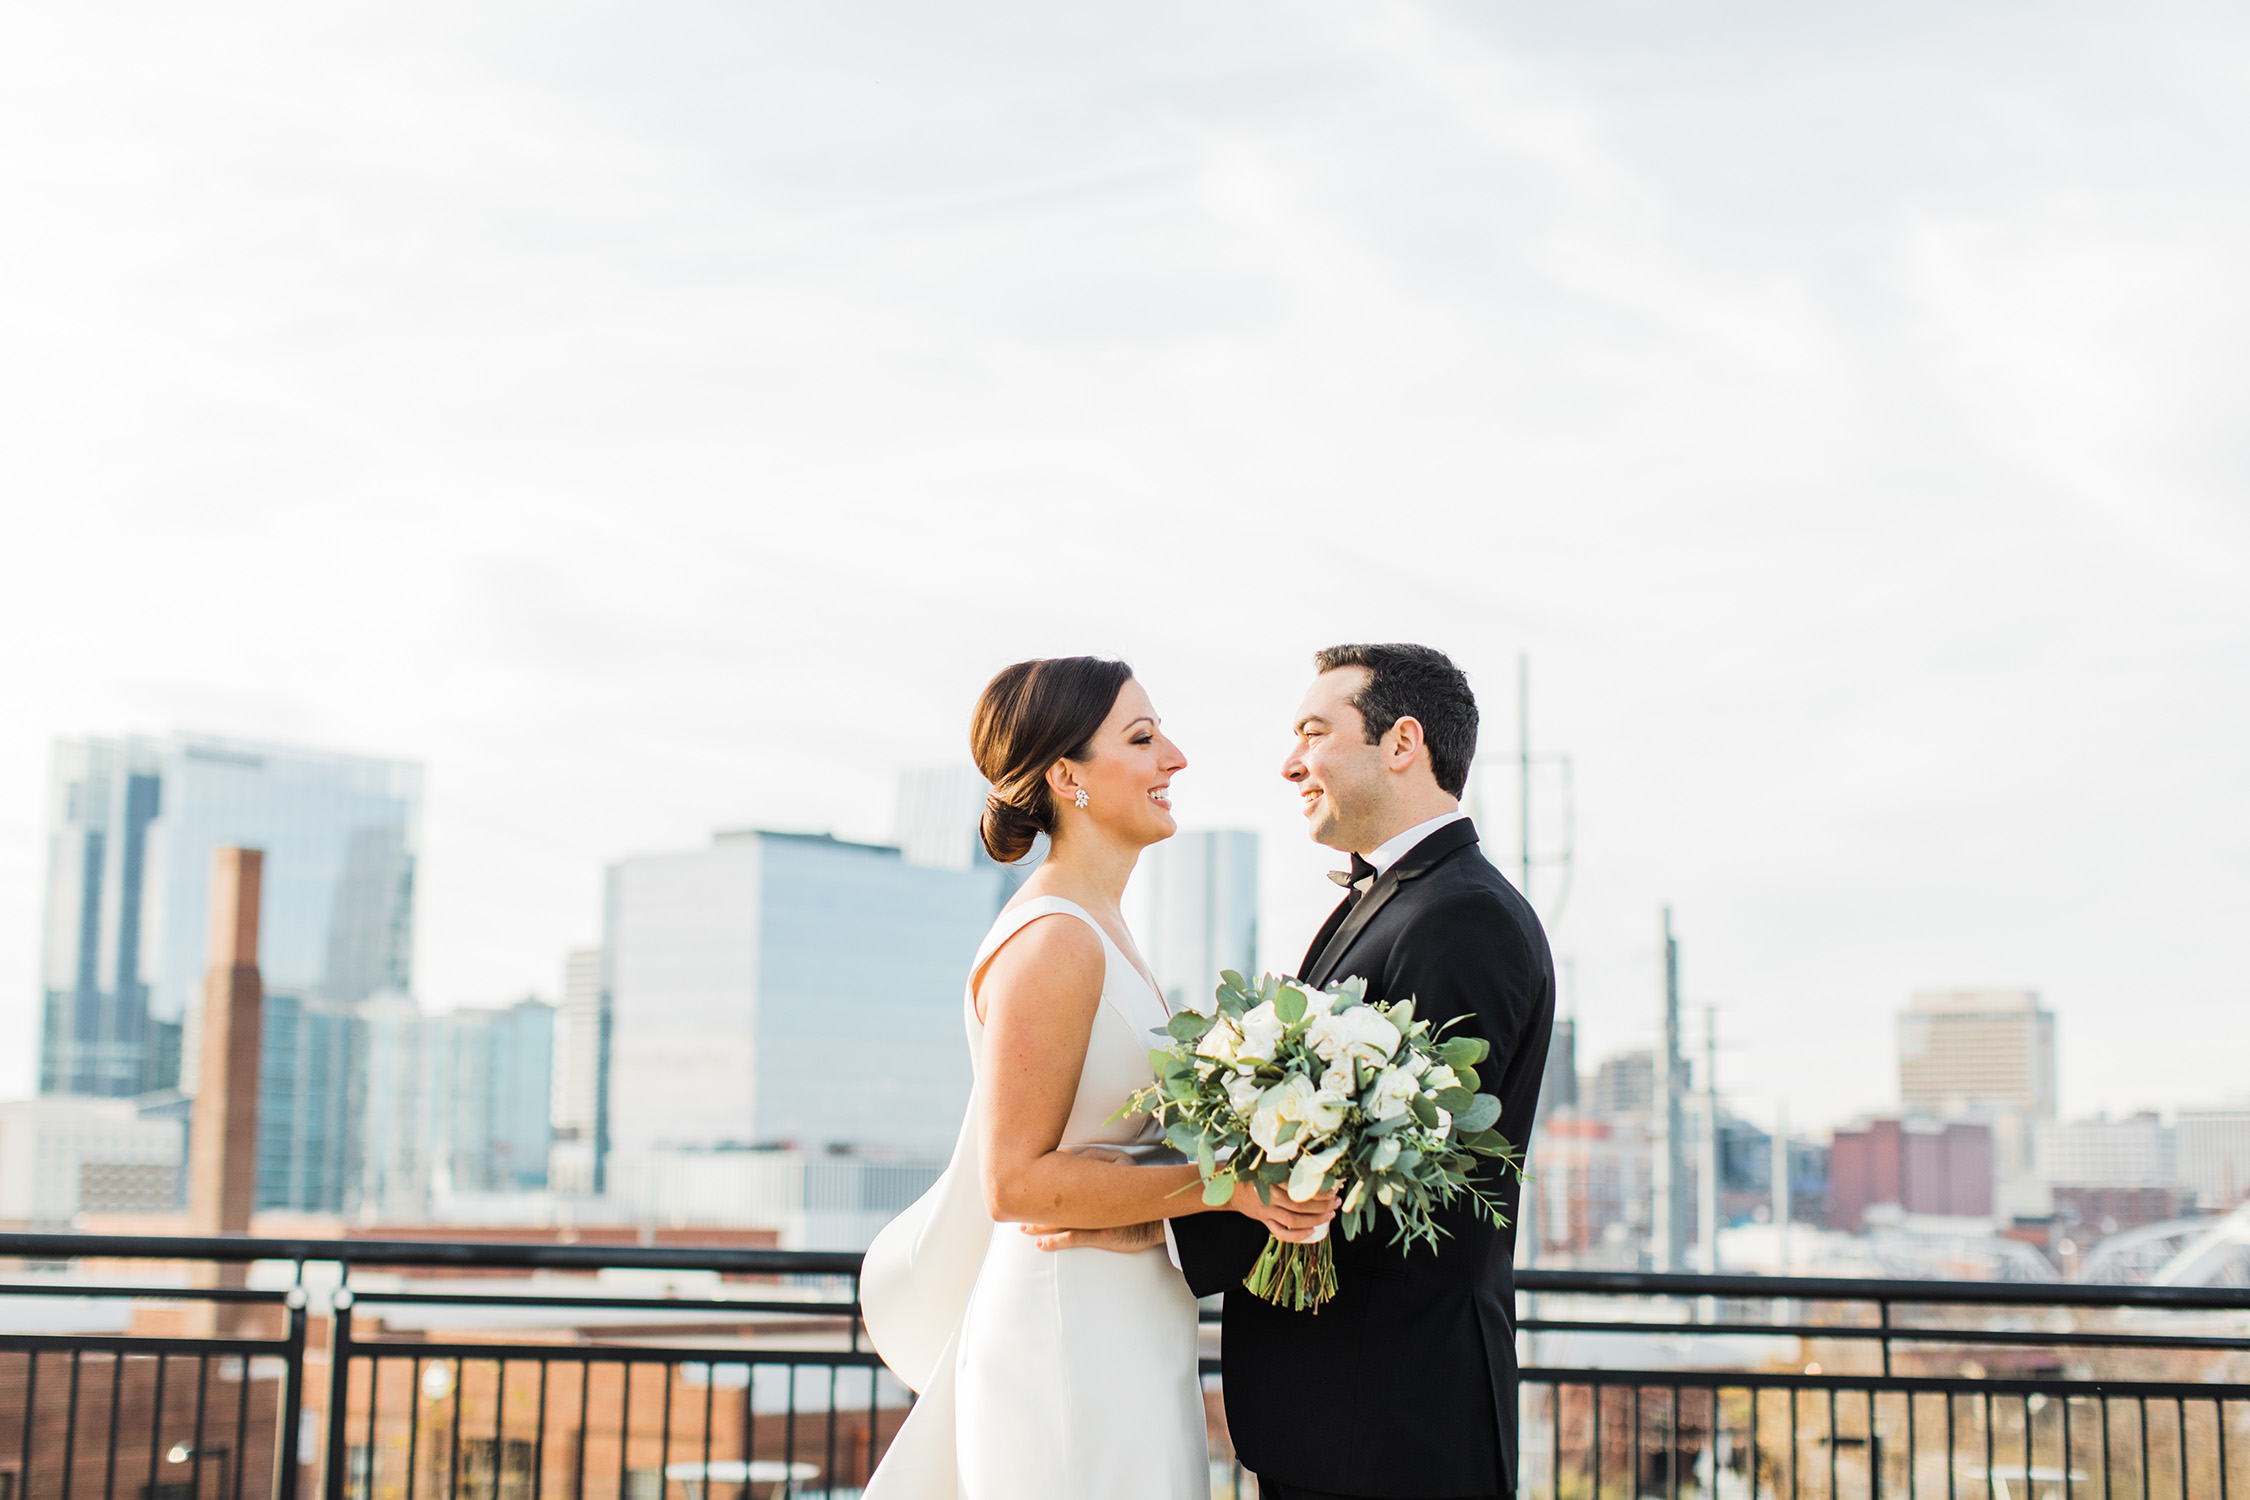 A contemporary chic wedding at The Bell Tower.